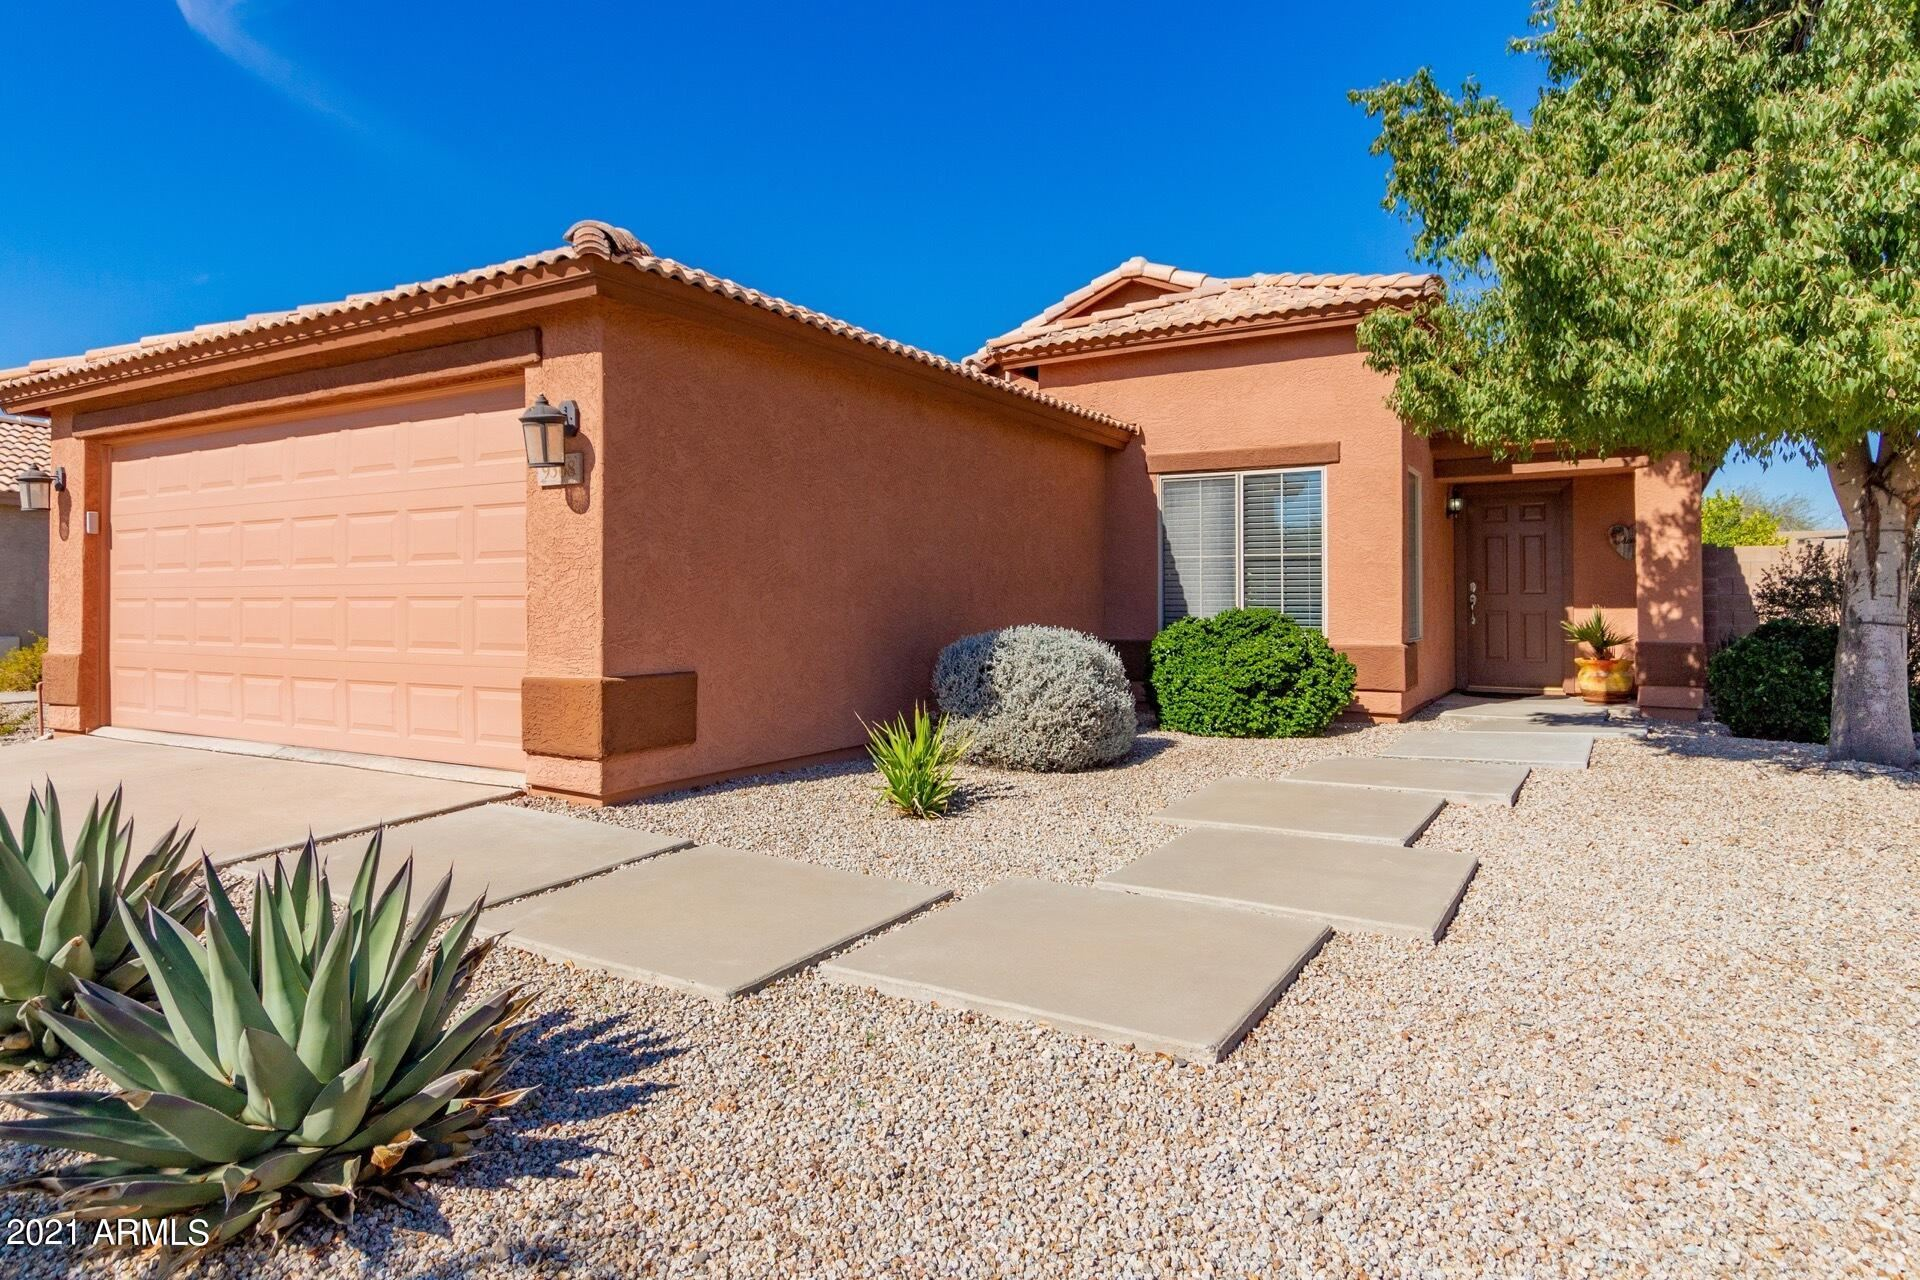 Photo of 9368 W ROSS Avenue, Peoria, AZ 85382 (MLS # 6197930)